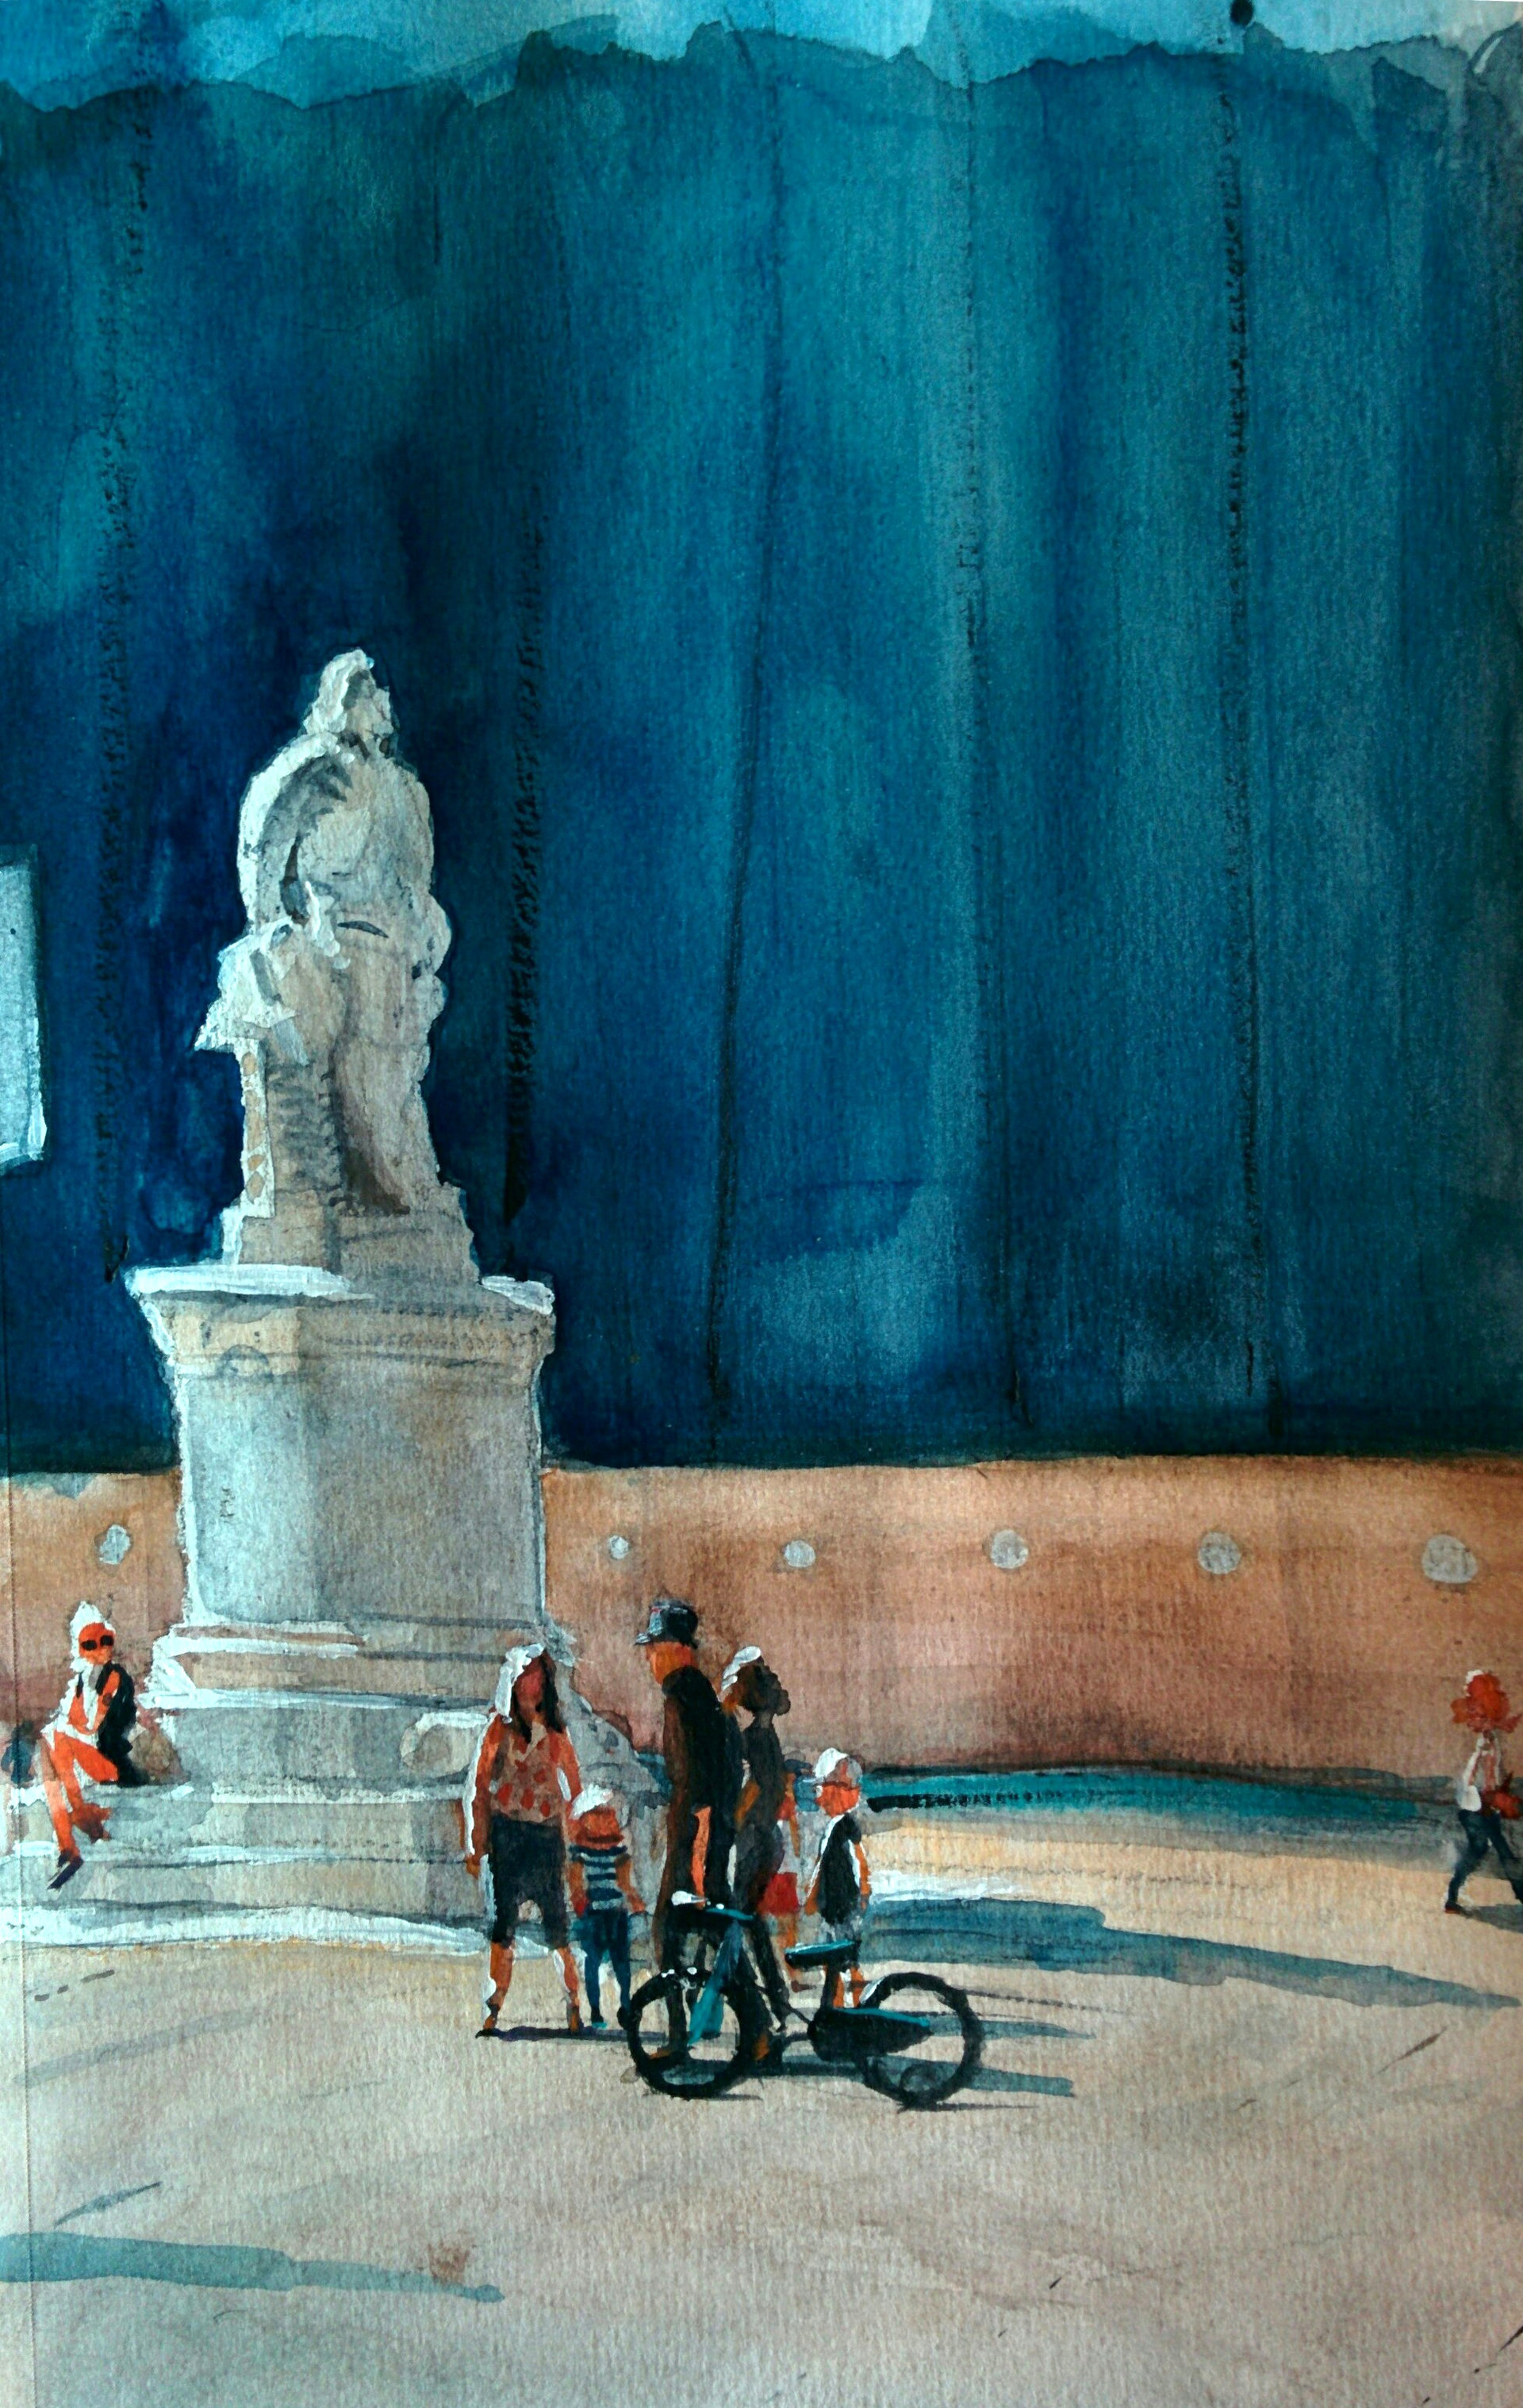 Paolo giandoso watercolor 05